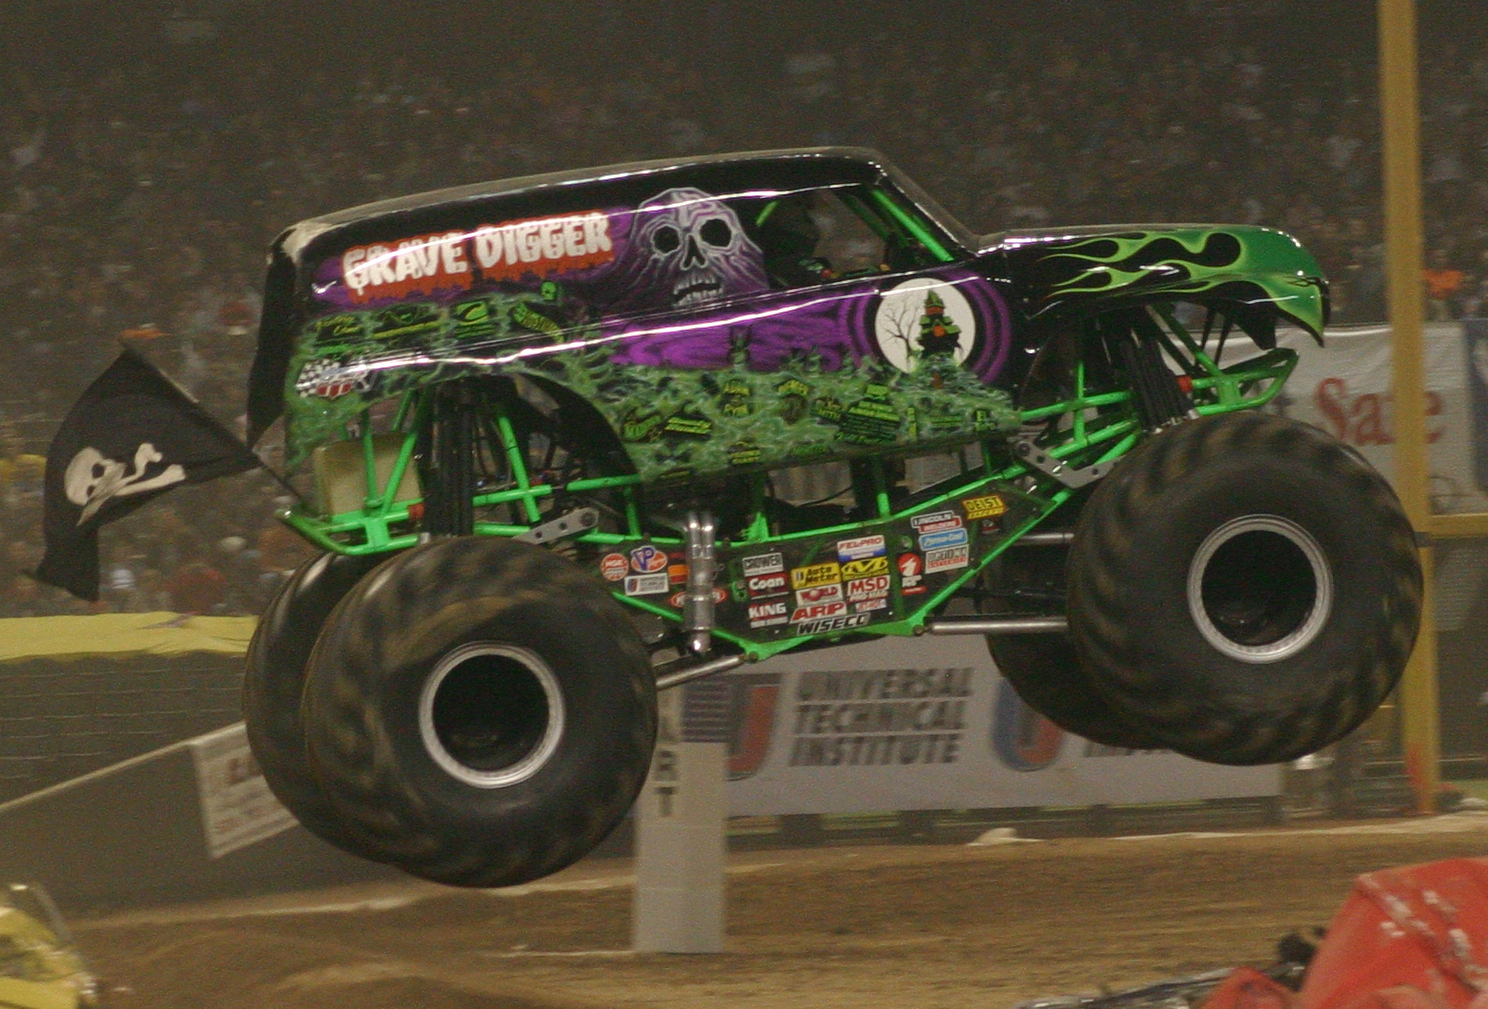 My Grave Digger Monster Truck Build Builds And Project Cars Forum